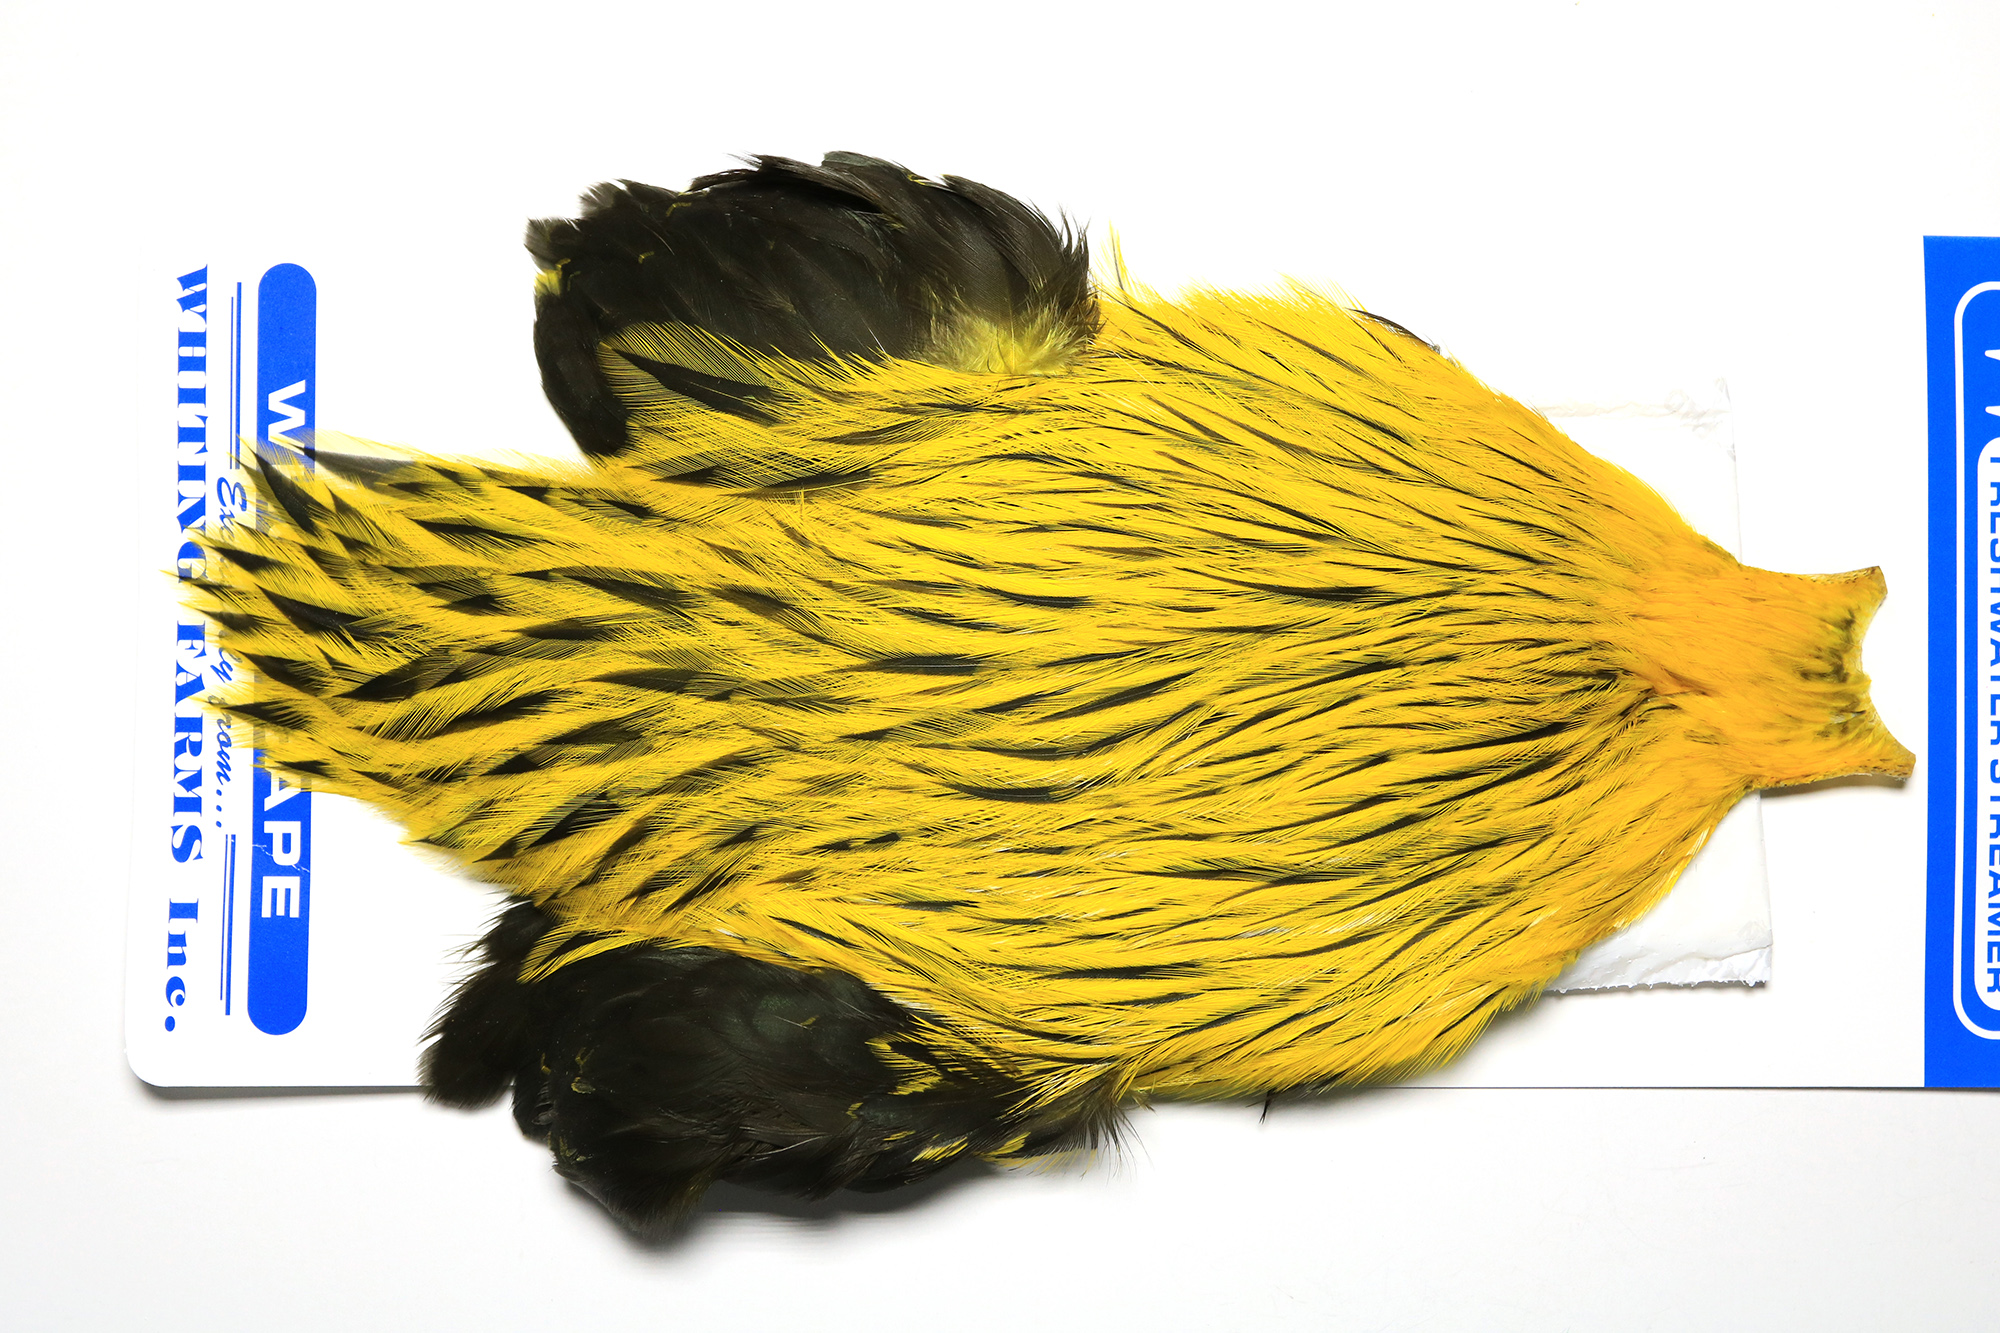 FWSC-4622 Whiting Freshwater Streamer Cape Badger dyed Yellow